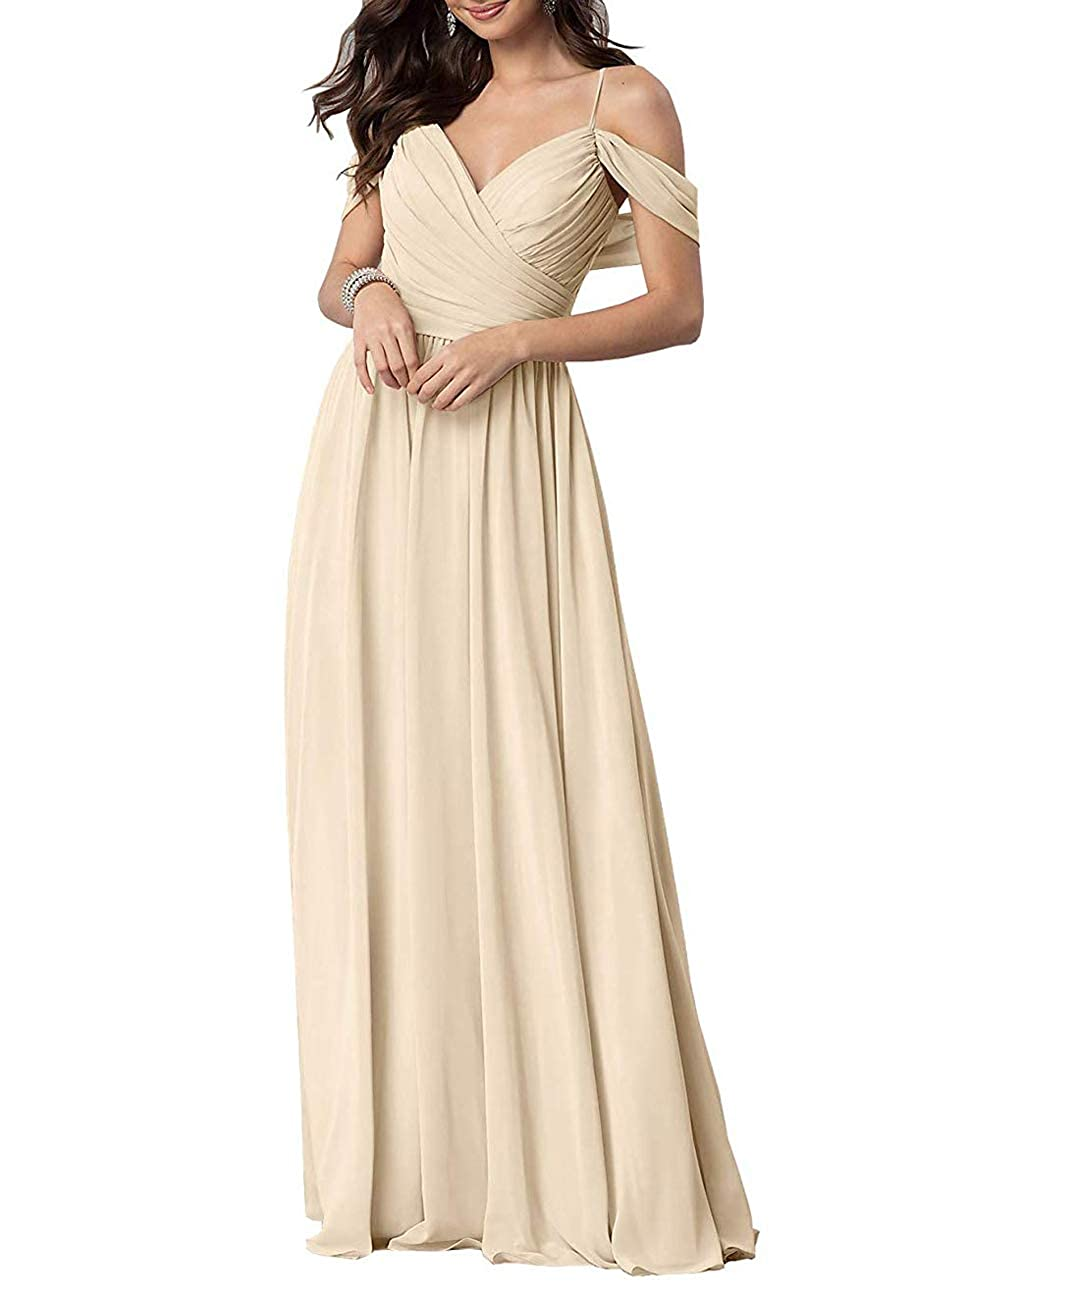 Champagne Long Prom Gown and Evening Dresses for Women OffTheShoulder Bridesmaid Dresses